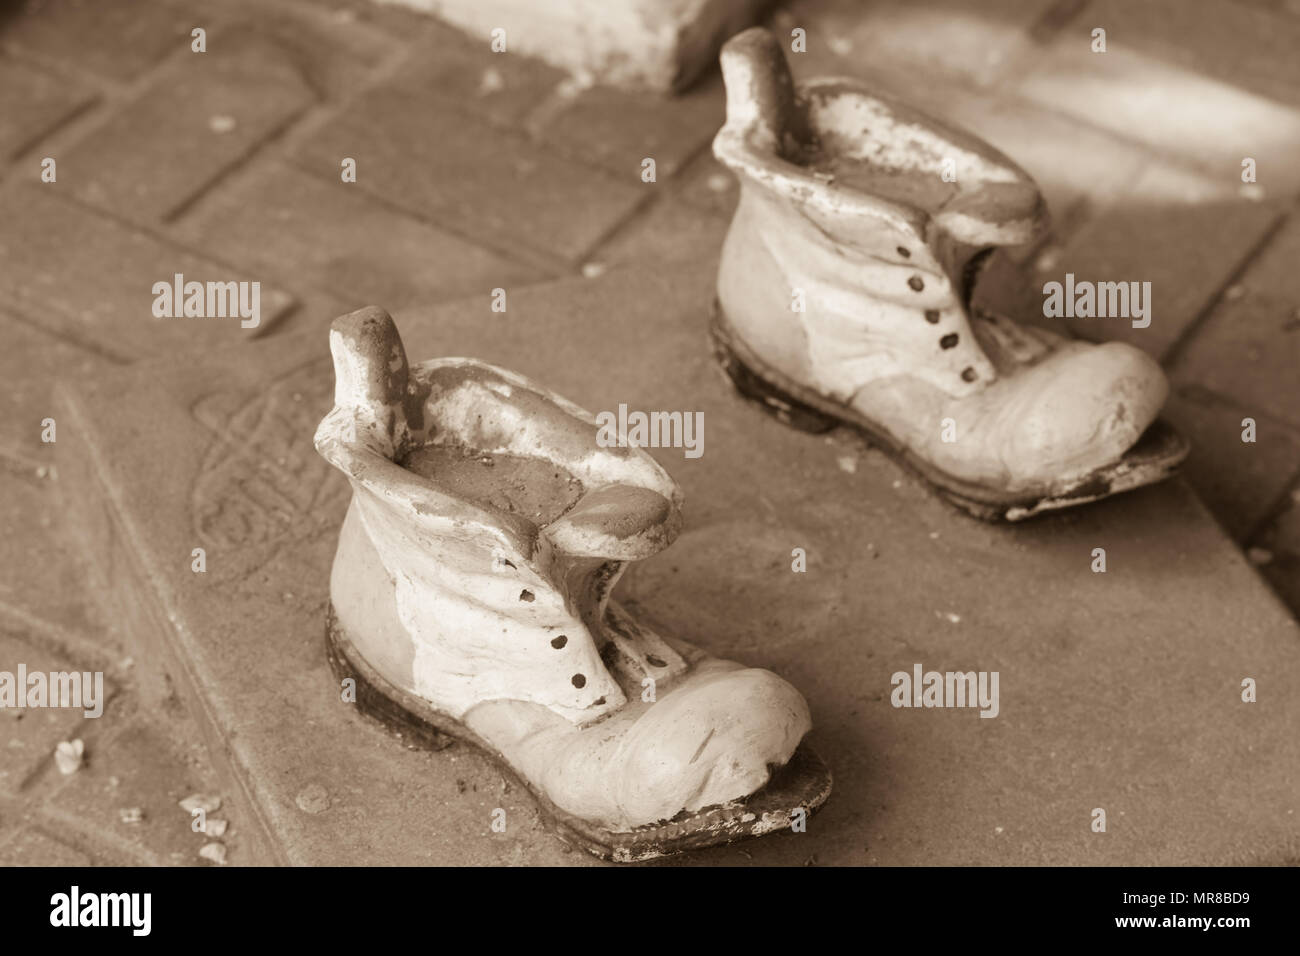 statue of leaky boots - Stock Image